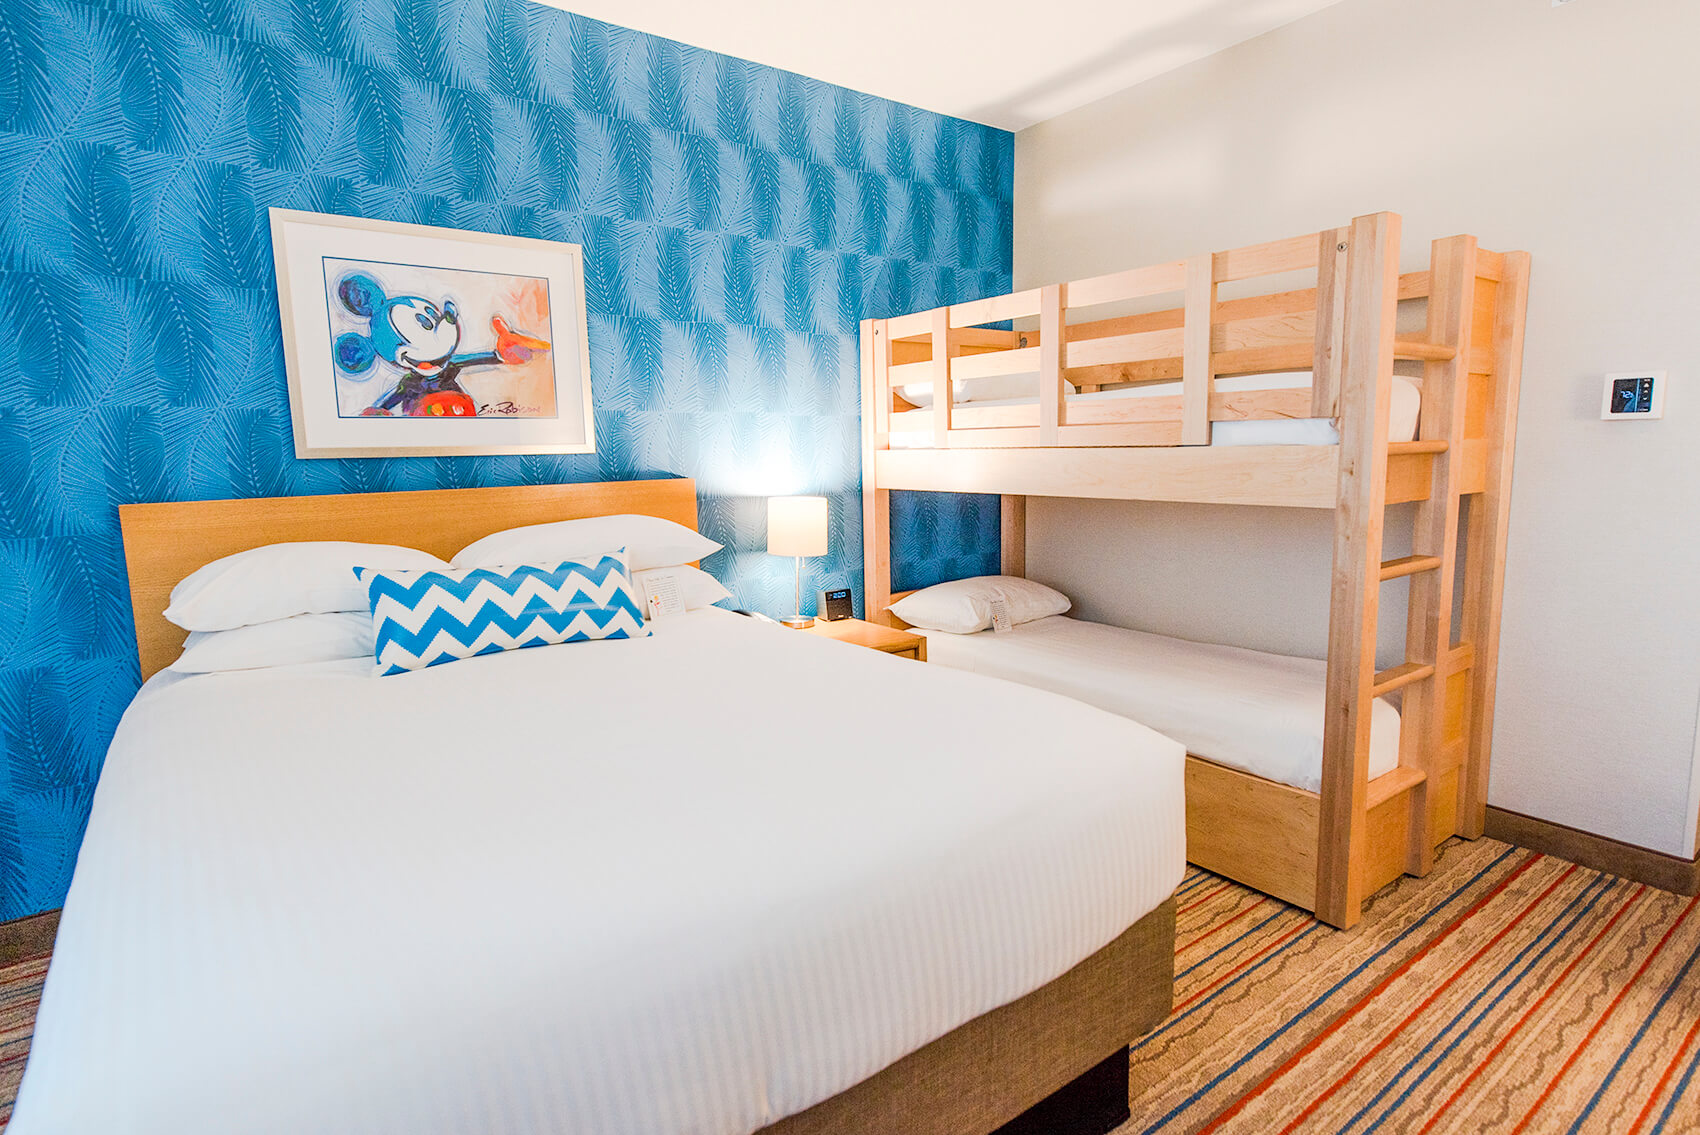 Mickey Mouse themed hotel room with a bed and bunk bed set